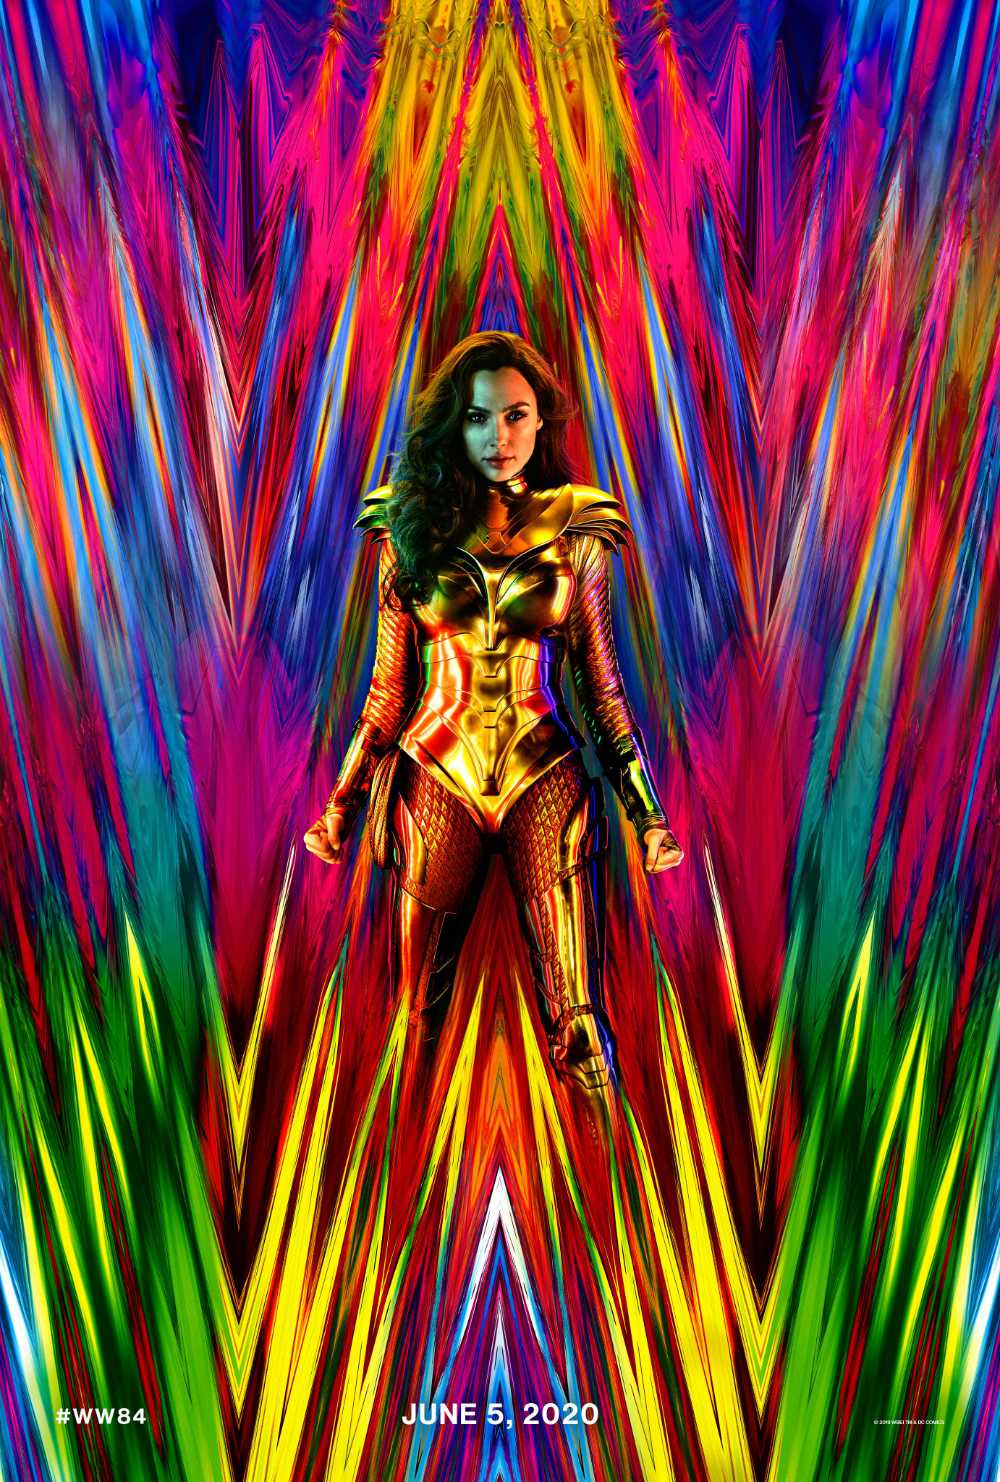 You are currently viewing Notes On A Film: Wonder Woman 1984